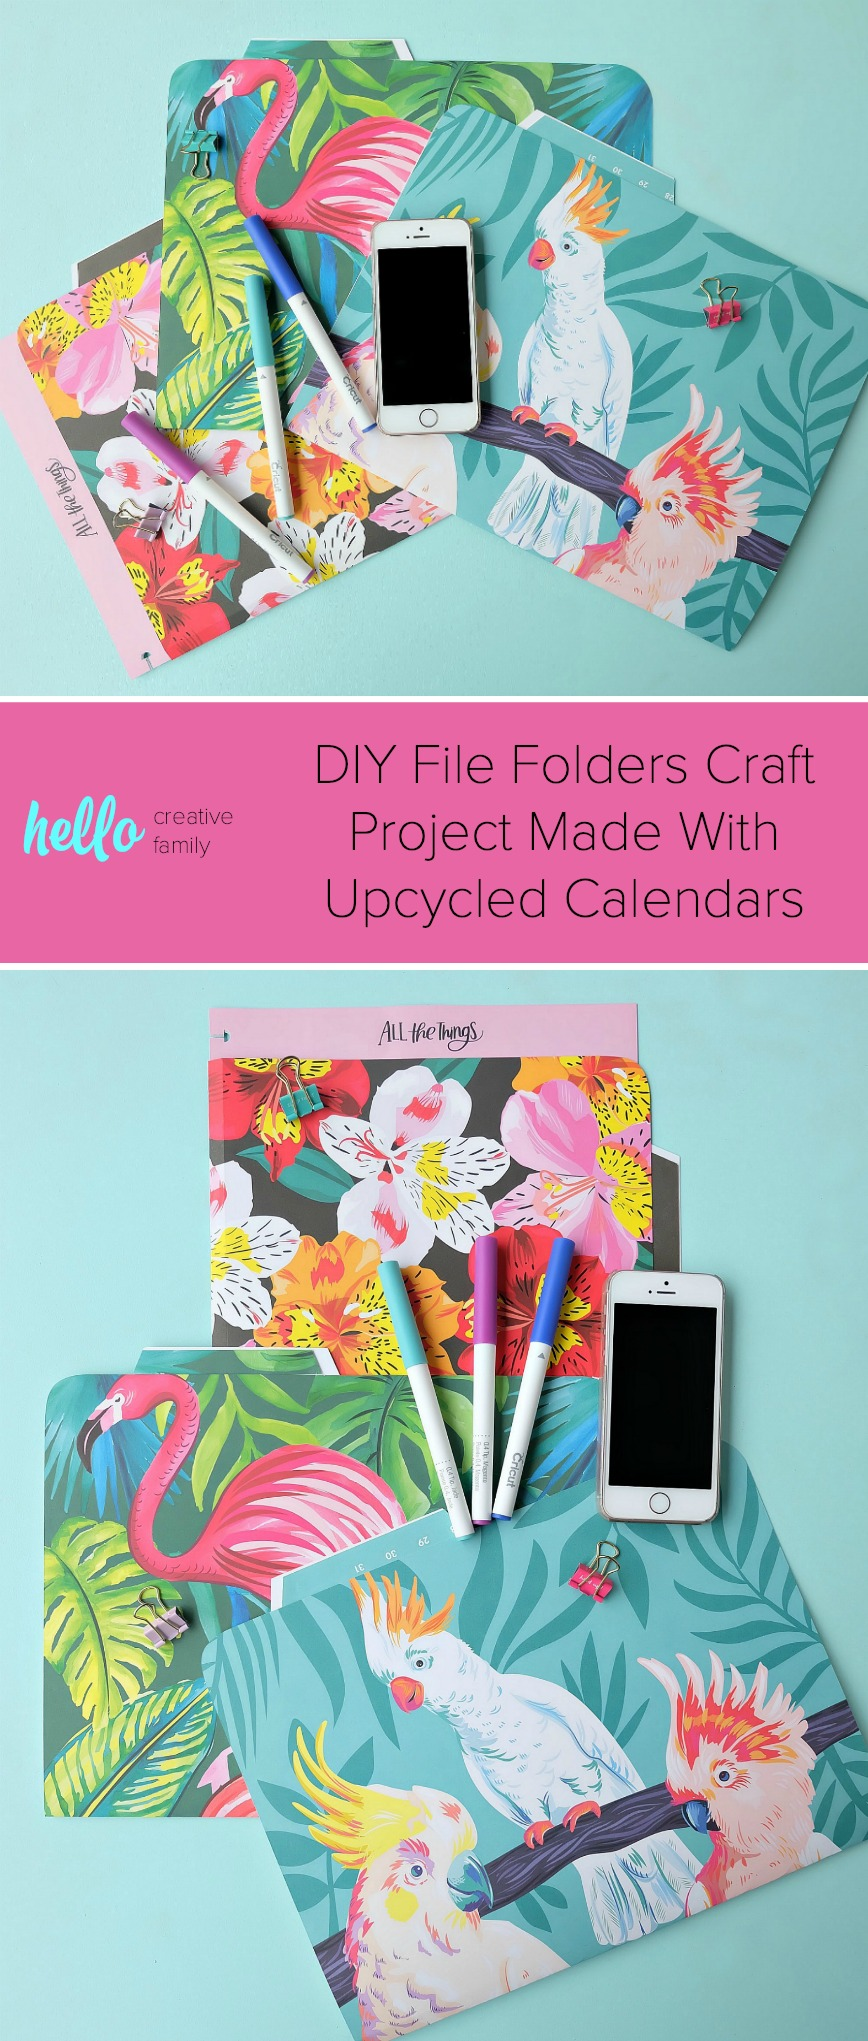 Get your paper craft on with this quick & easy project! Learn how to upcycle an old calendar into awesome DIY File Folders using a Cricut or scissors! You'll have the fanciest custom office supplies in town! #Cricut #papercrafts #Crafts #DIY